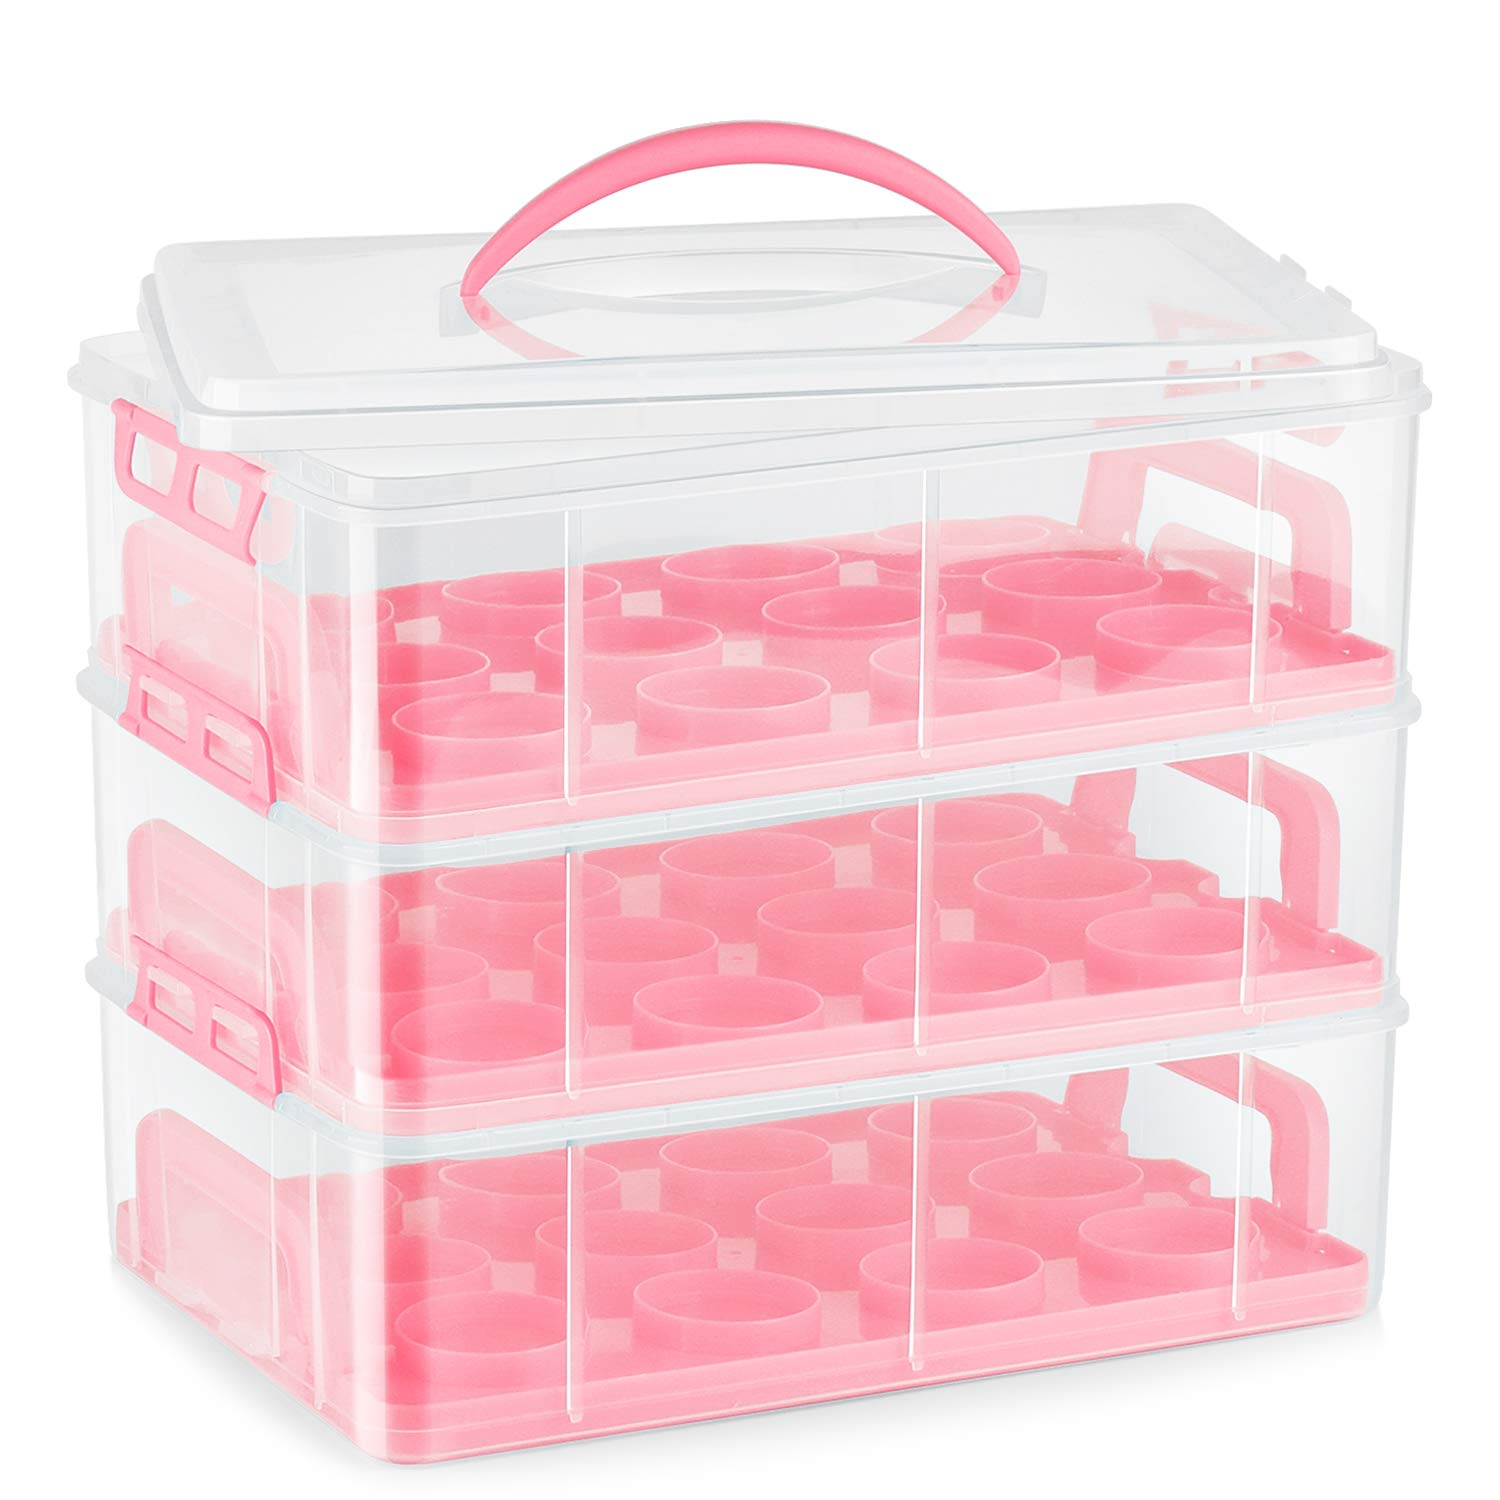 Flexzion Cupcake Carrier Holder Container Box (36 Slot, 3 Tier) - 36 Cupcakes Slot or 3 Large Cakes Pastry Clear Plastic Storage Basket Taker Courier with 3 Tier Stackable Layer Insert (Pink) by Flexzion